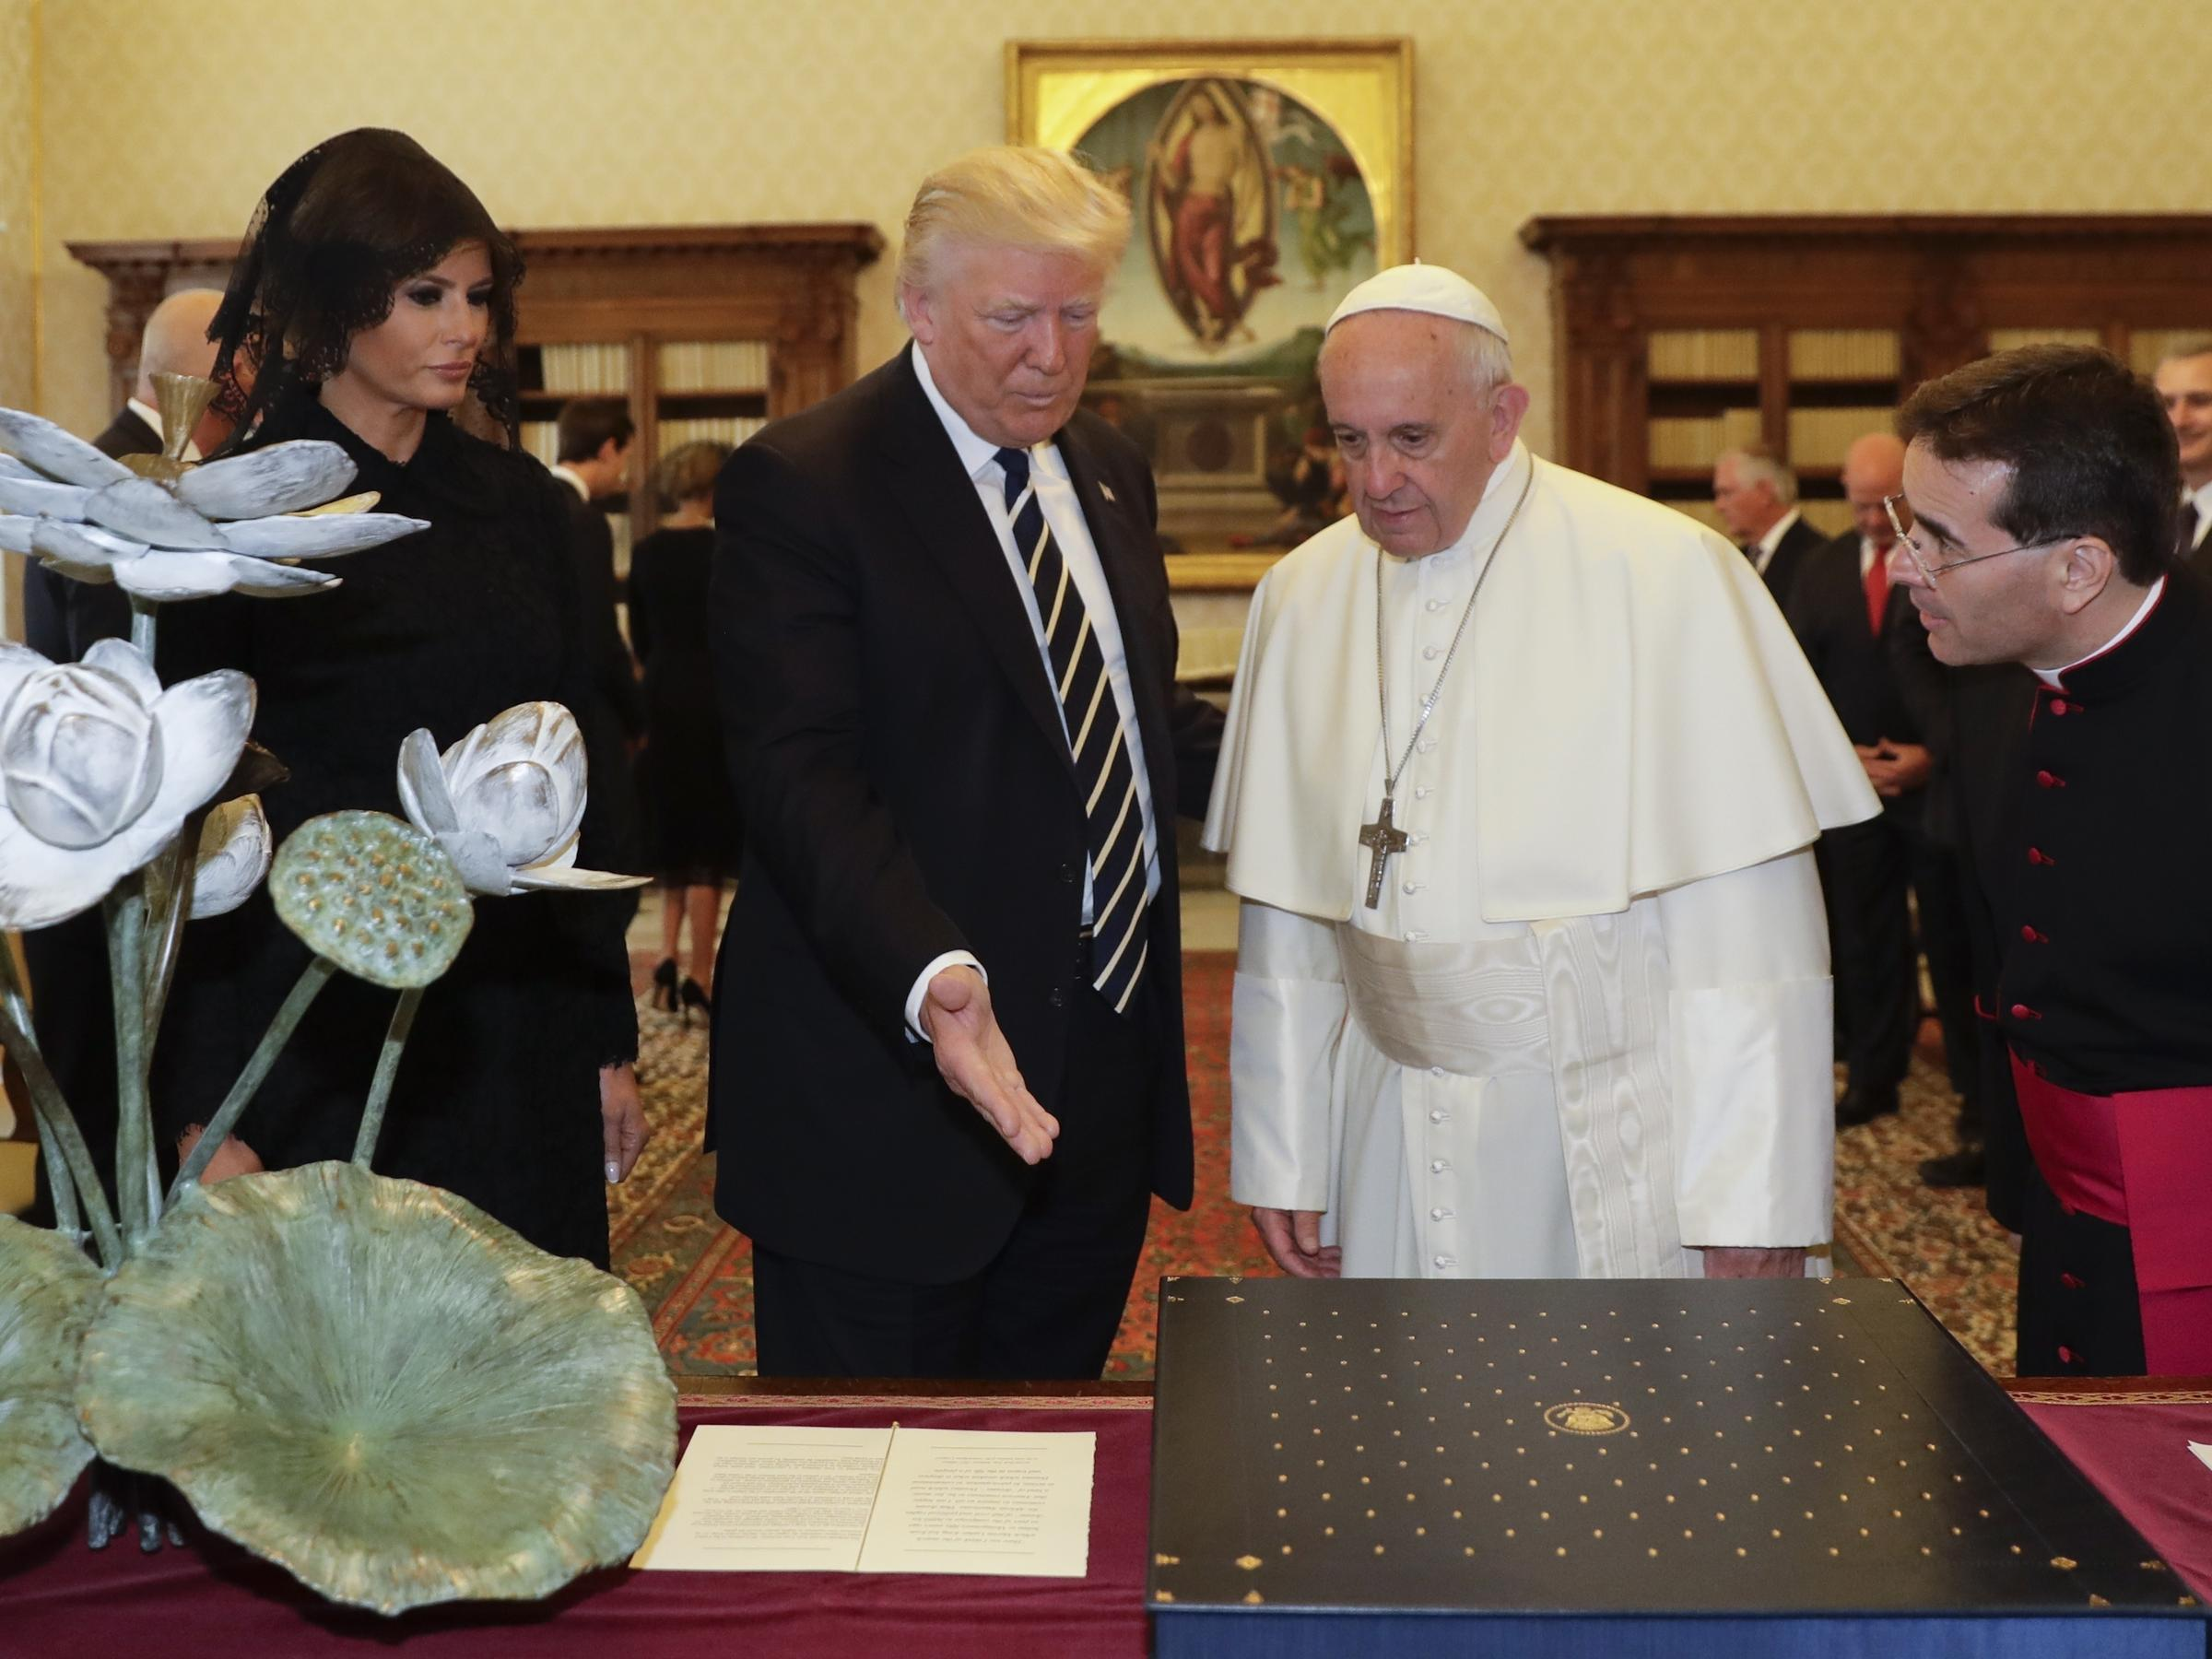 Pope Francis Extends An Olive Branch To Donald Trump - Literally